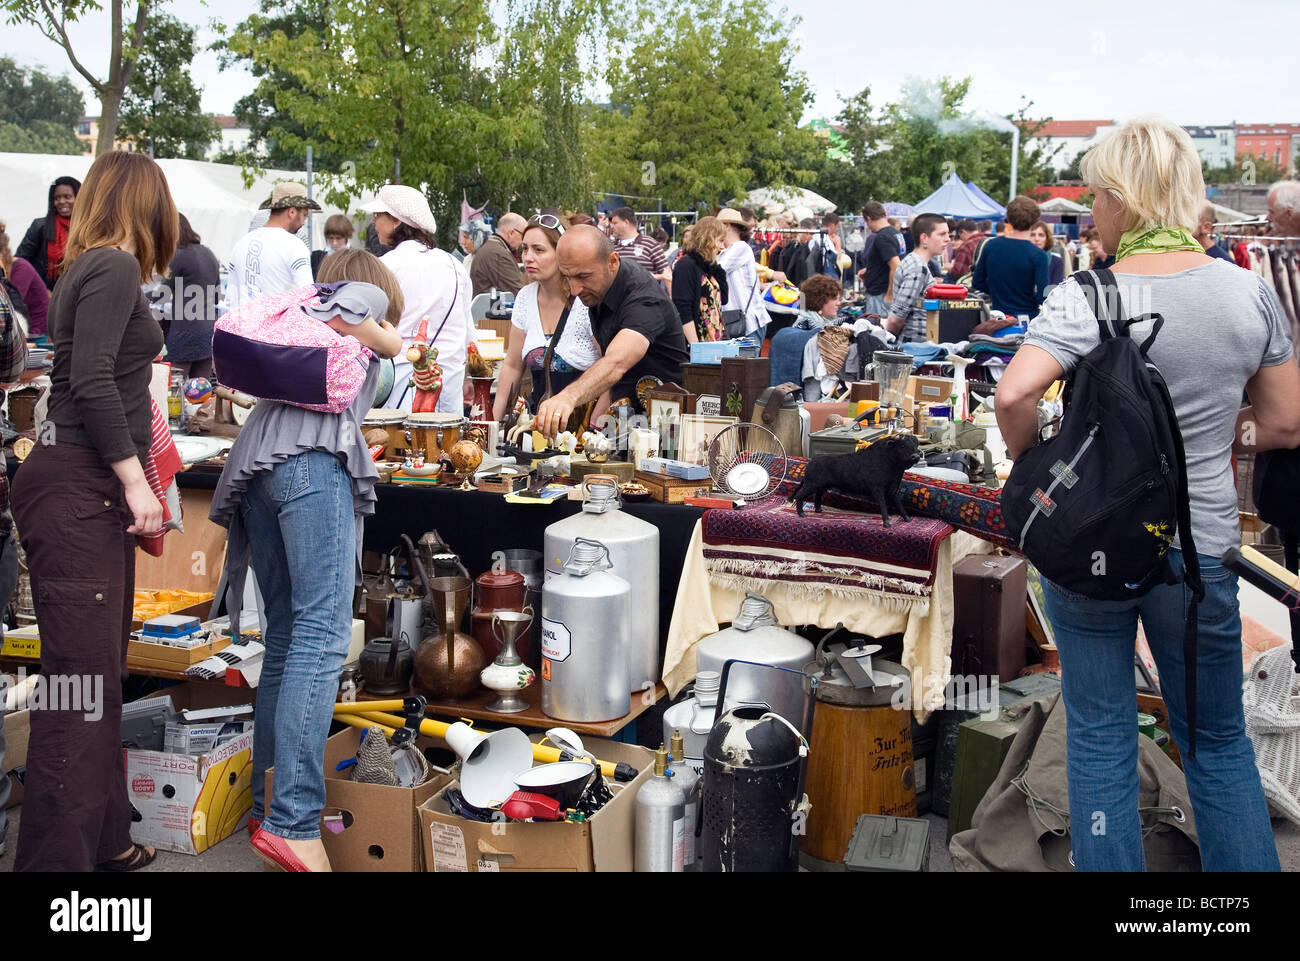 Flea Market at Mauerpark, Berlin, Germany Stock Photo